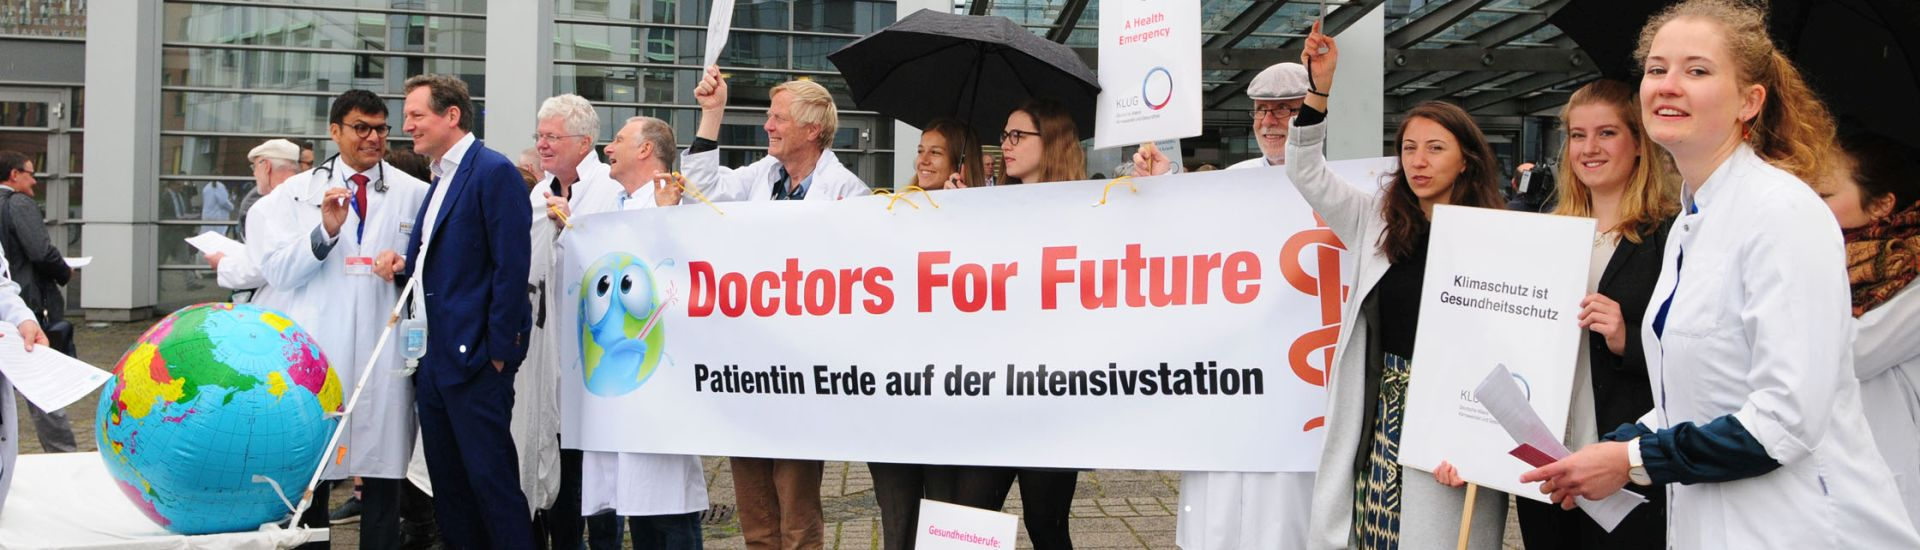 Banner Doctors For Future